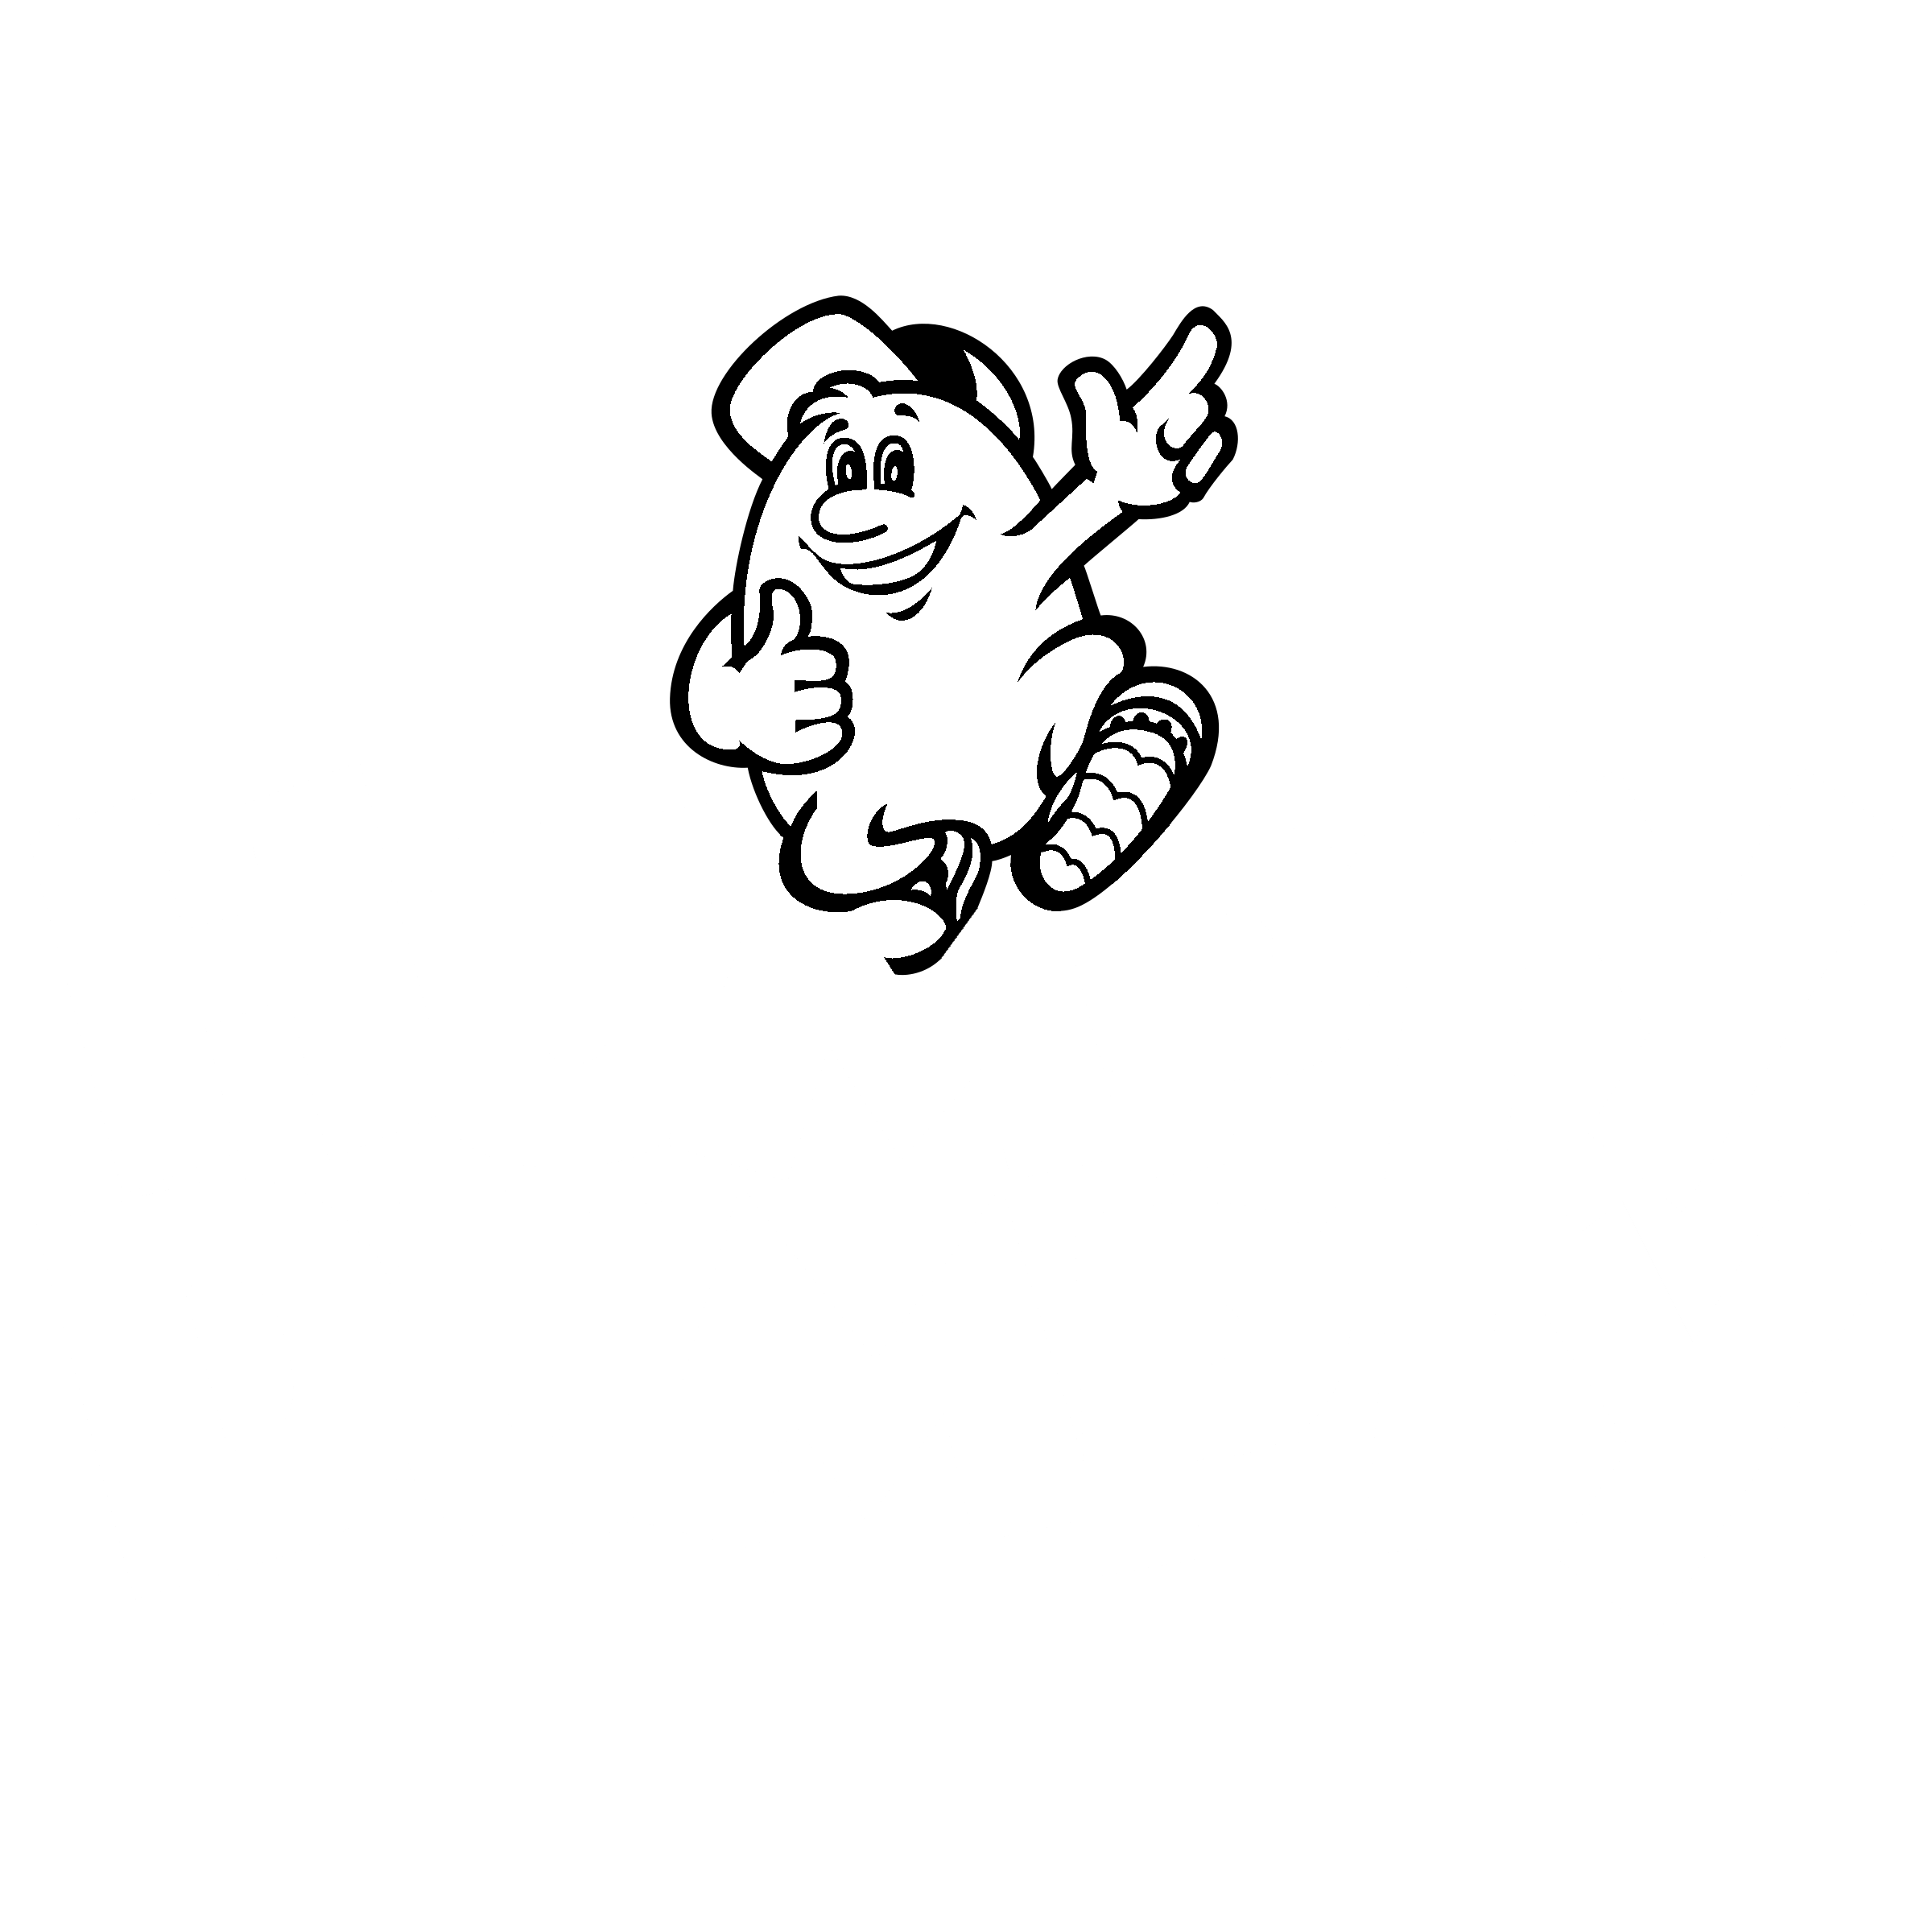 Fancy template ensign entry. Humpty dumpty clipart outline